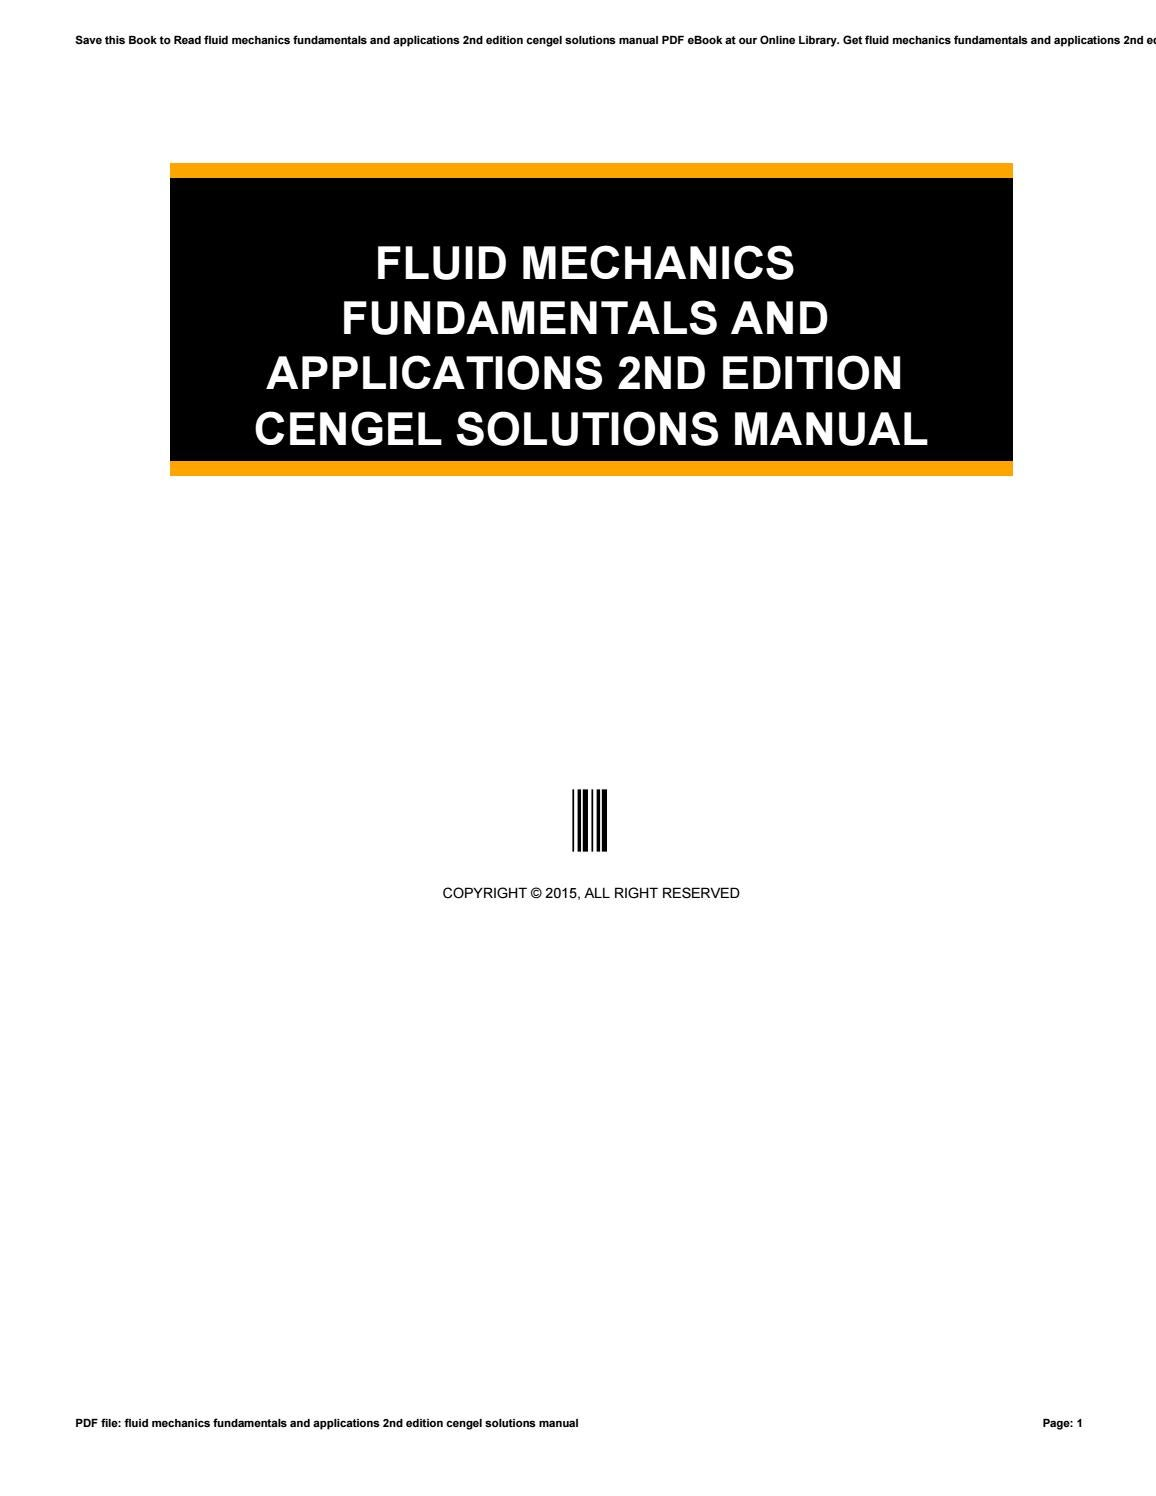 fluid mechanics fundamentals and applications 2nd edition cengel rh issuu  com Cengel Fluid Mechanics 3rd Edition Cengel Fluid Mechanics PDF